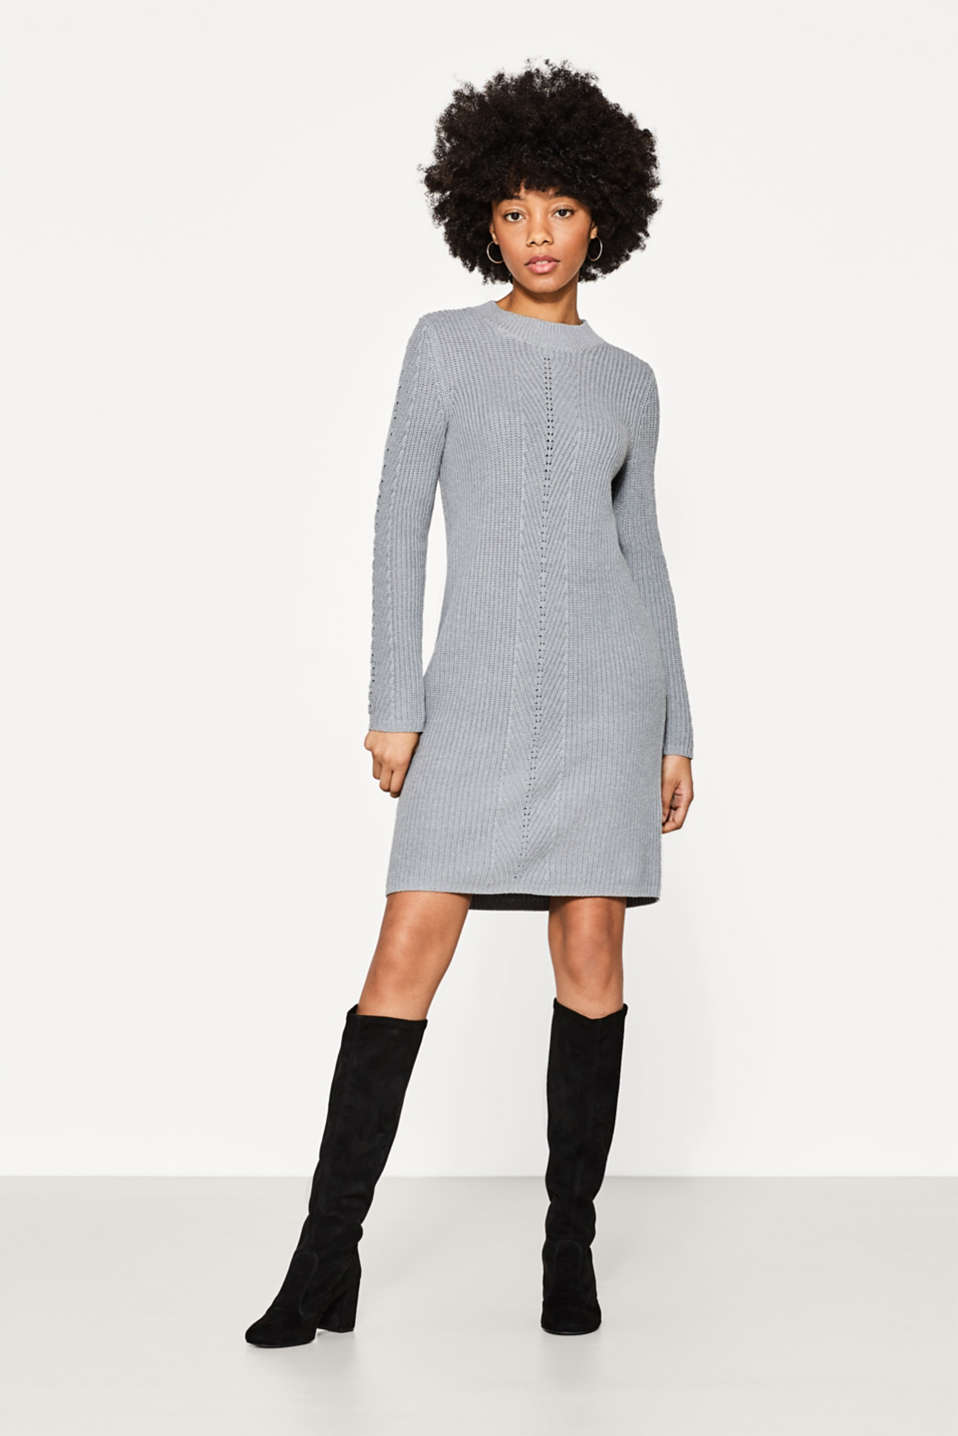 Esprit - Casual dress in a sporty ribbed knit